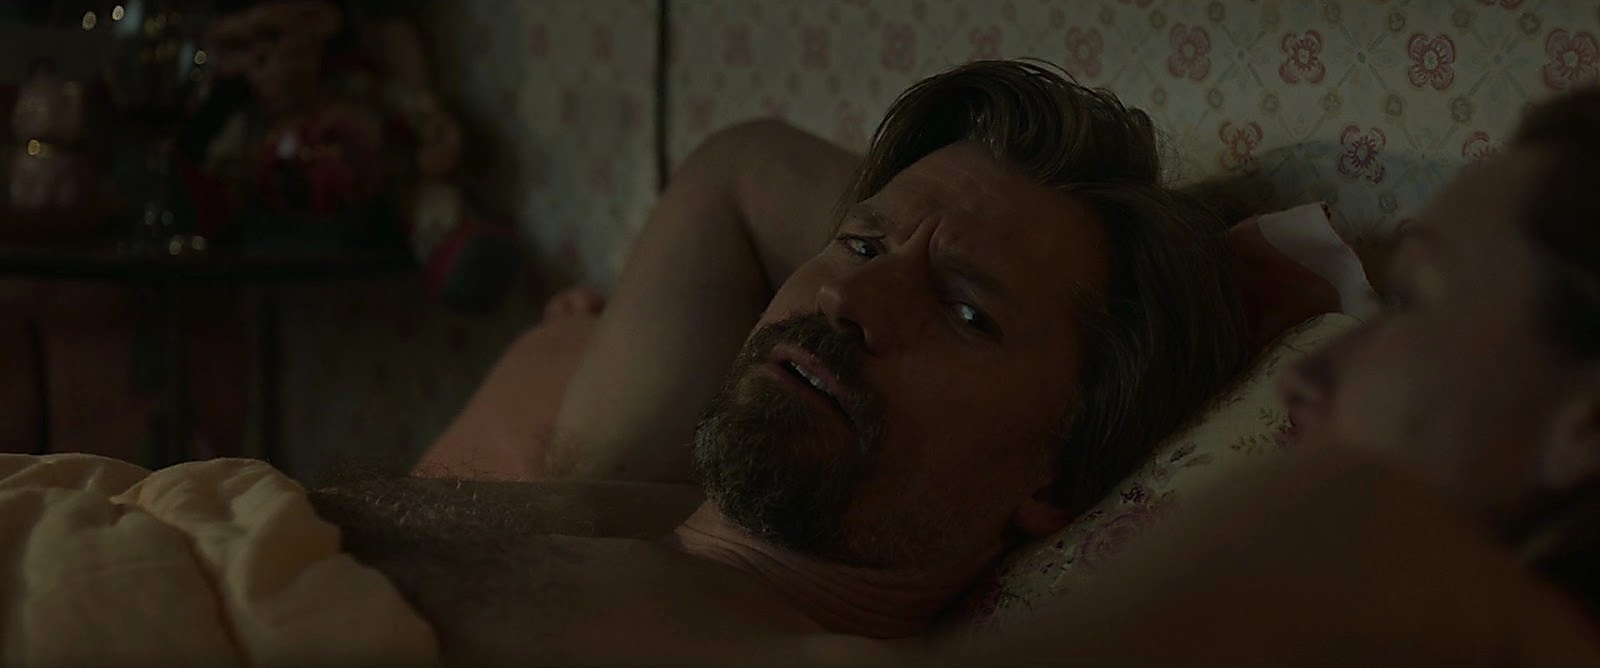 Nikolaj Coster Waldau sexy shirtless scene April 30, 2017, 1pm